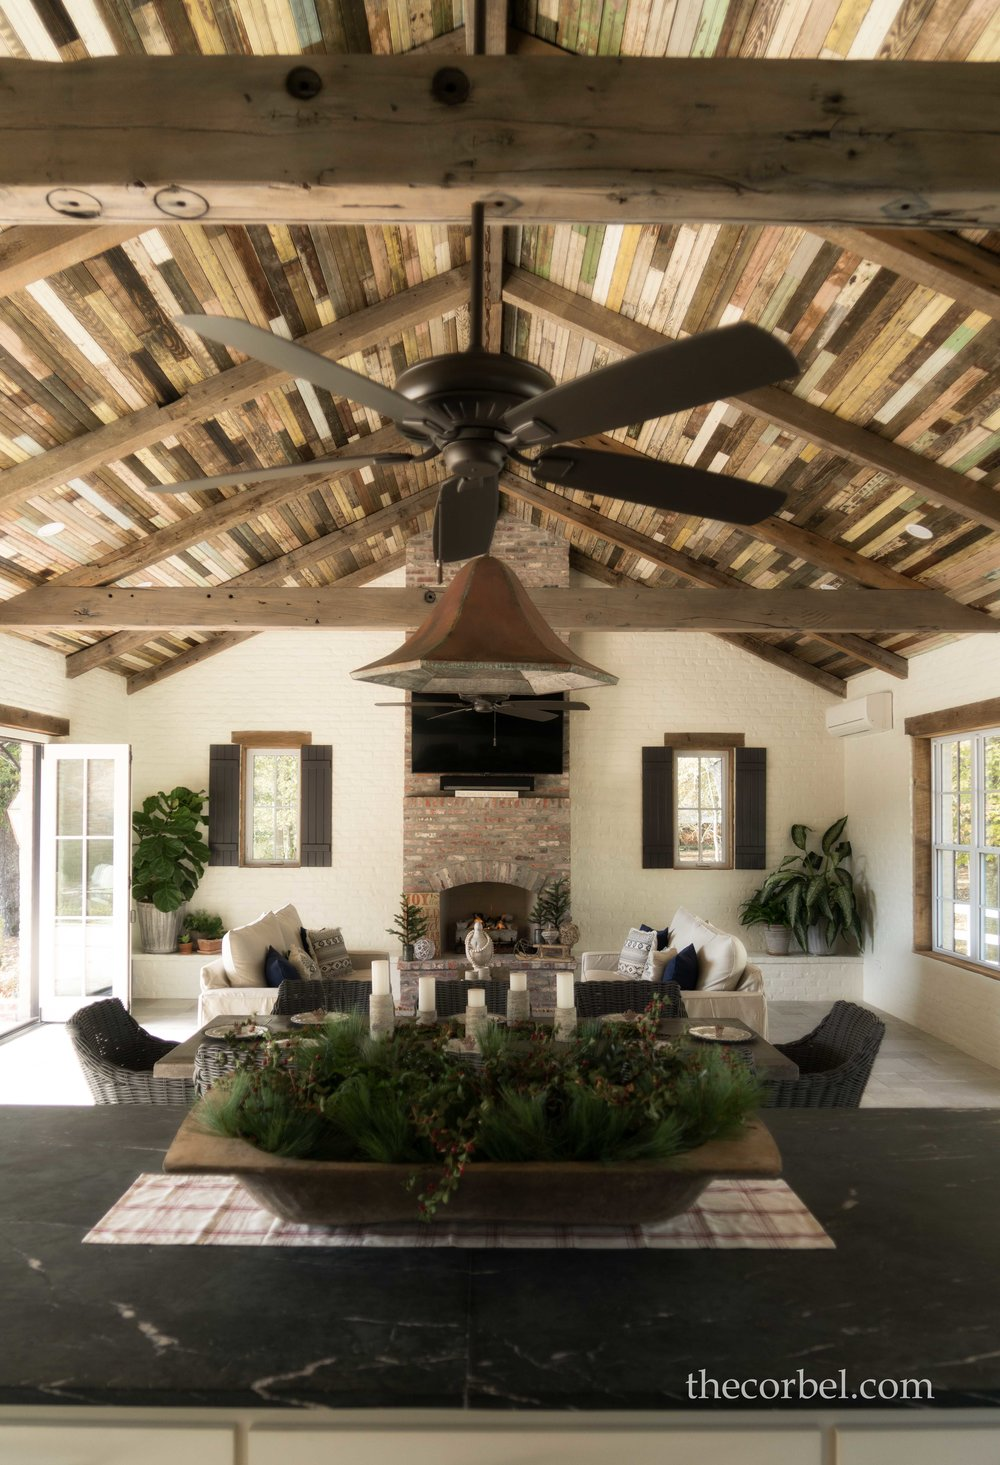 charlet bros poolhouse interior2.jpg